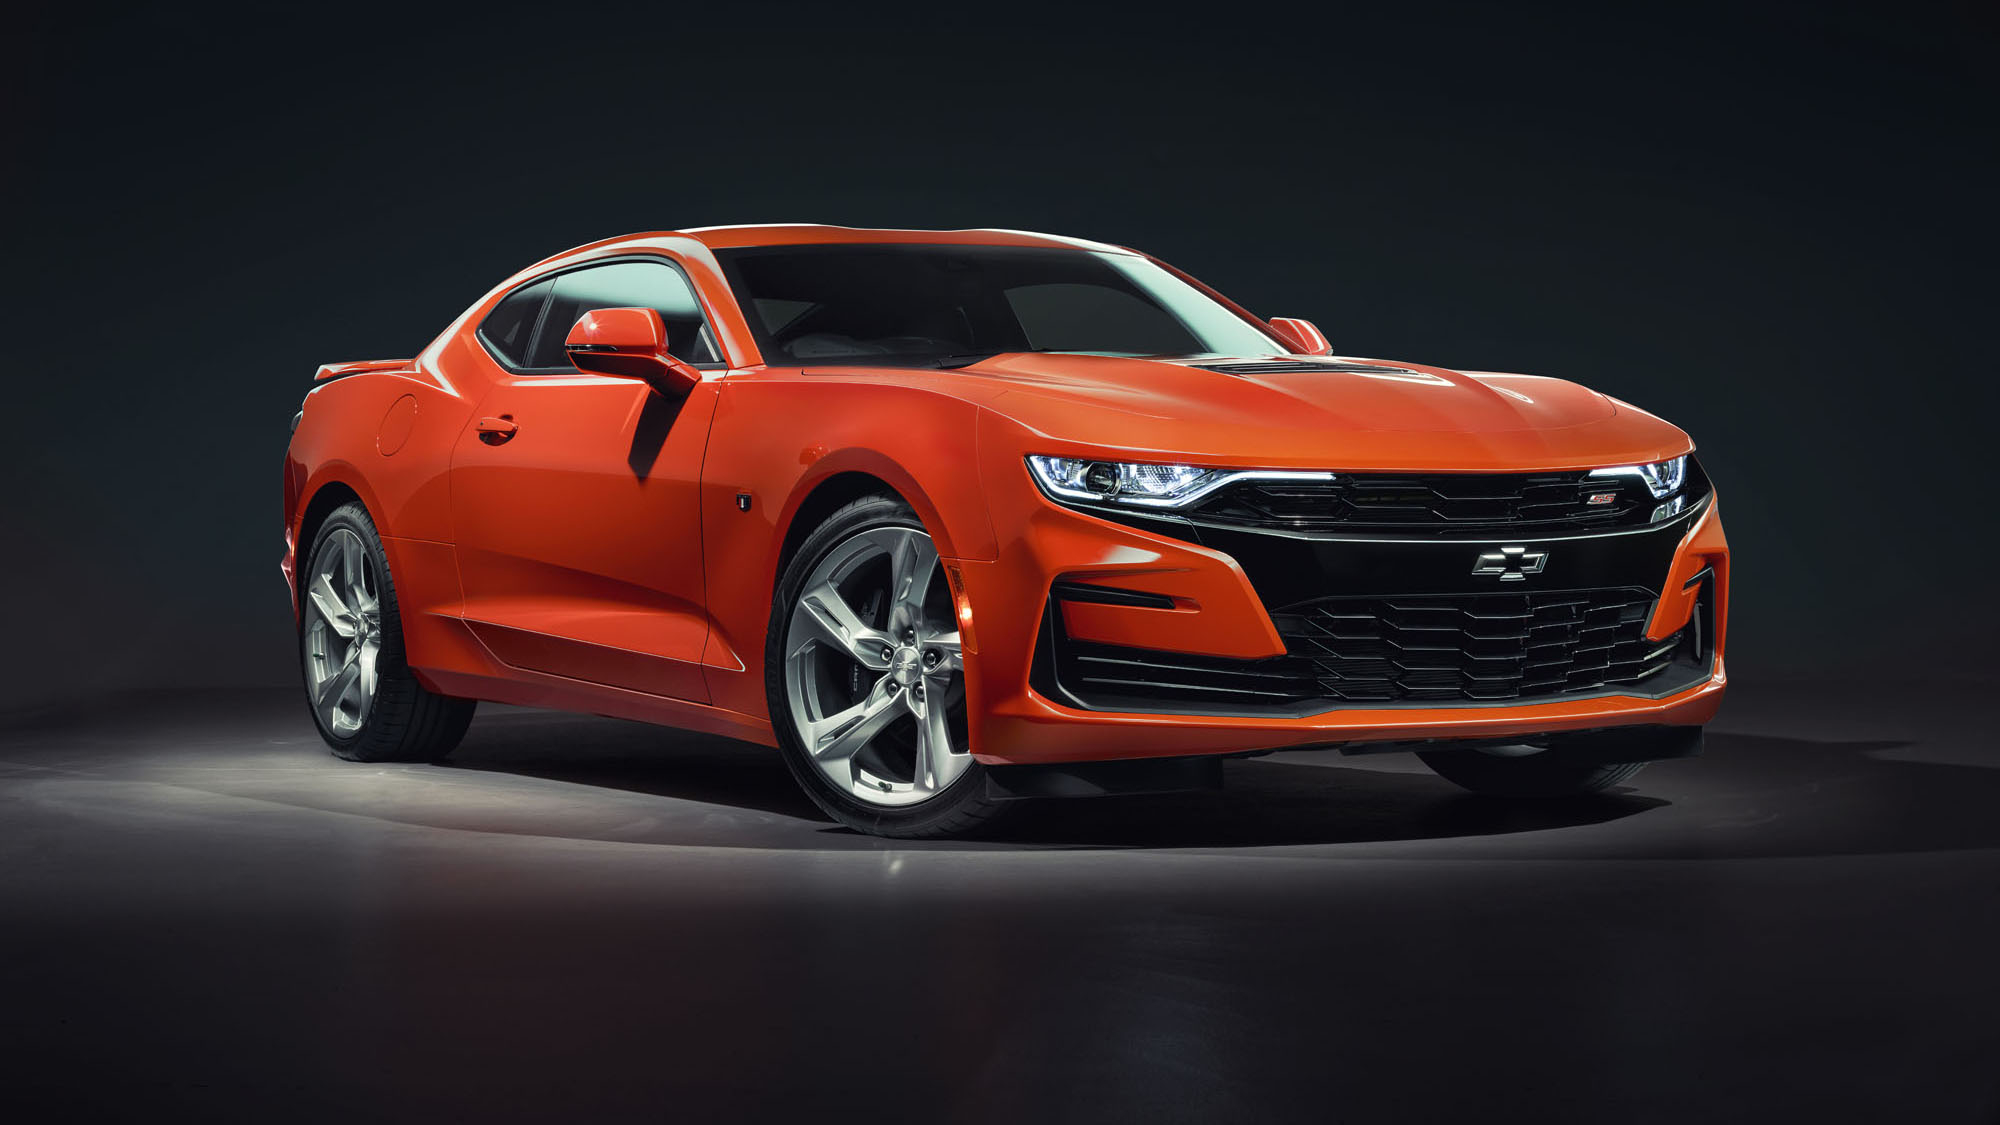 2019 Chevrolet Camaro 2Ss Coming To Australia With Manual 2022 Chevy Camaro Cost, Bolt Pattern, Build